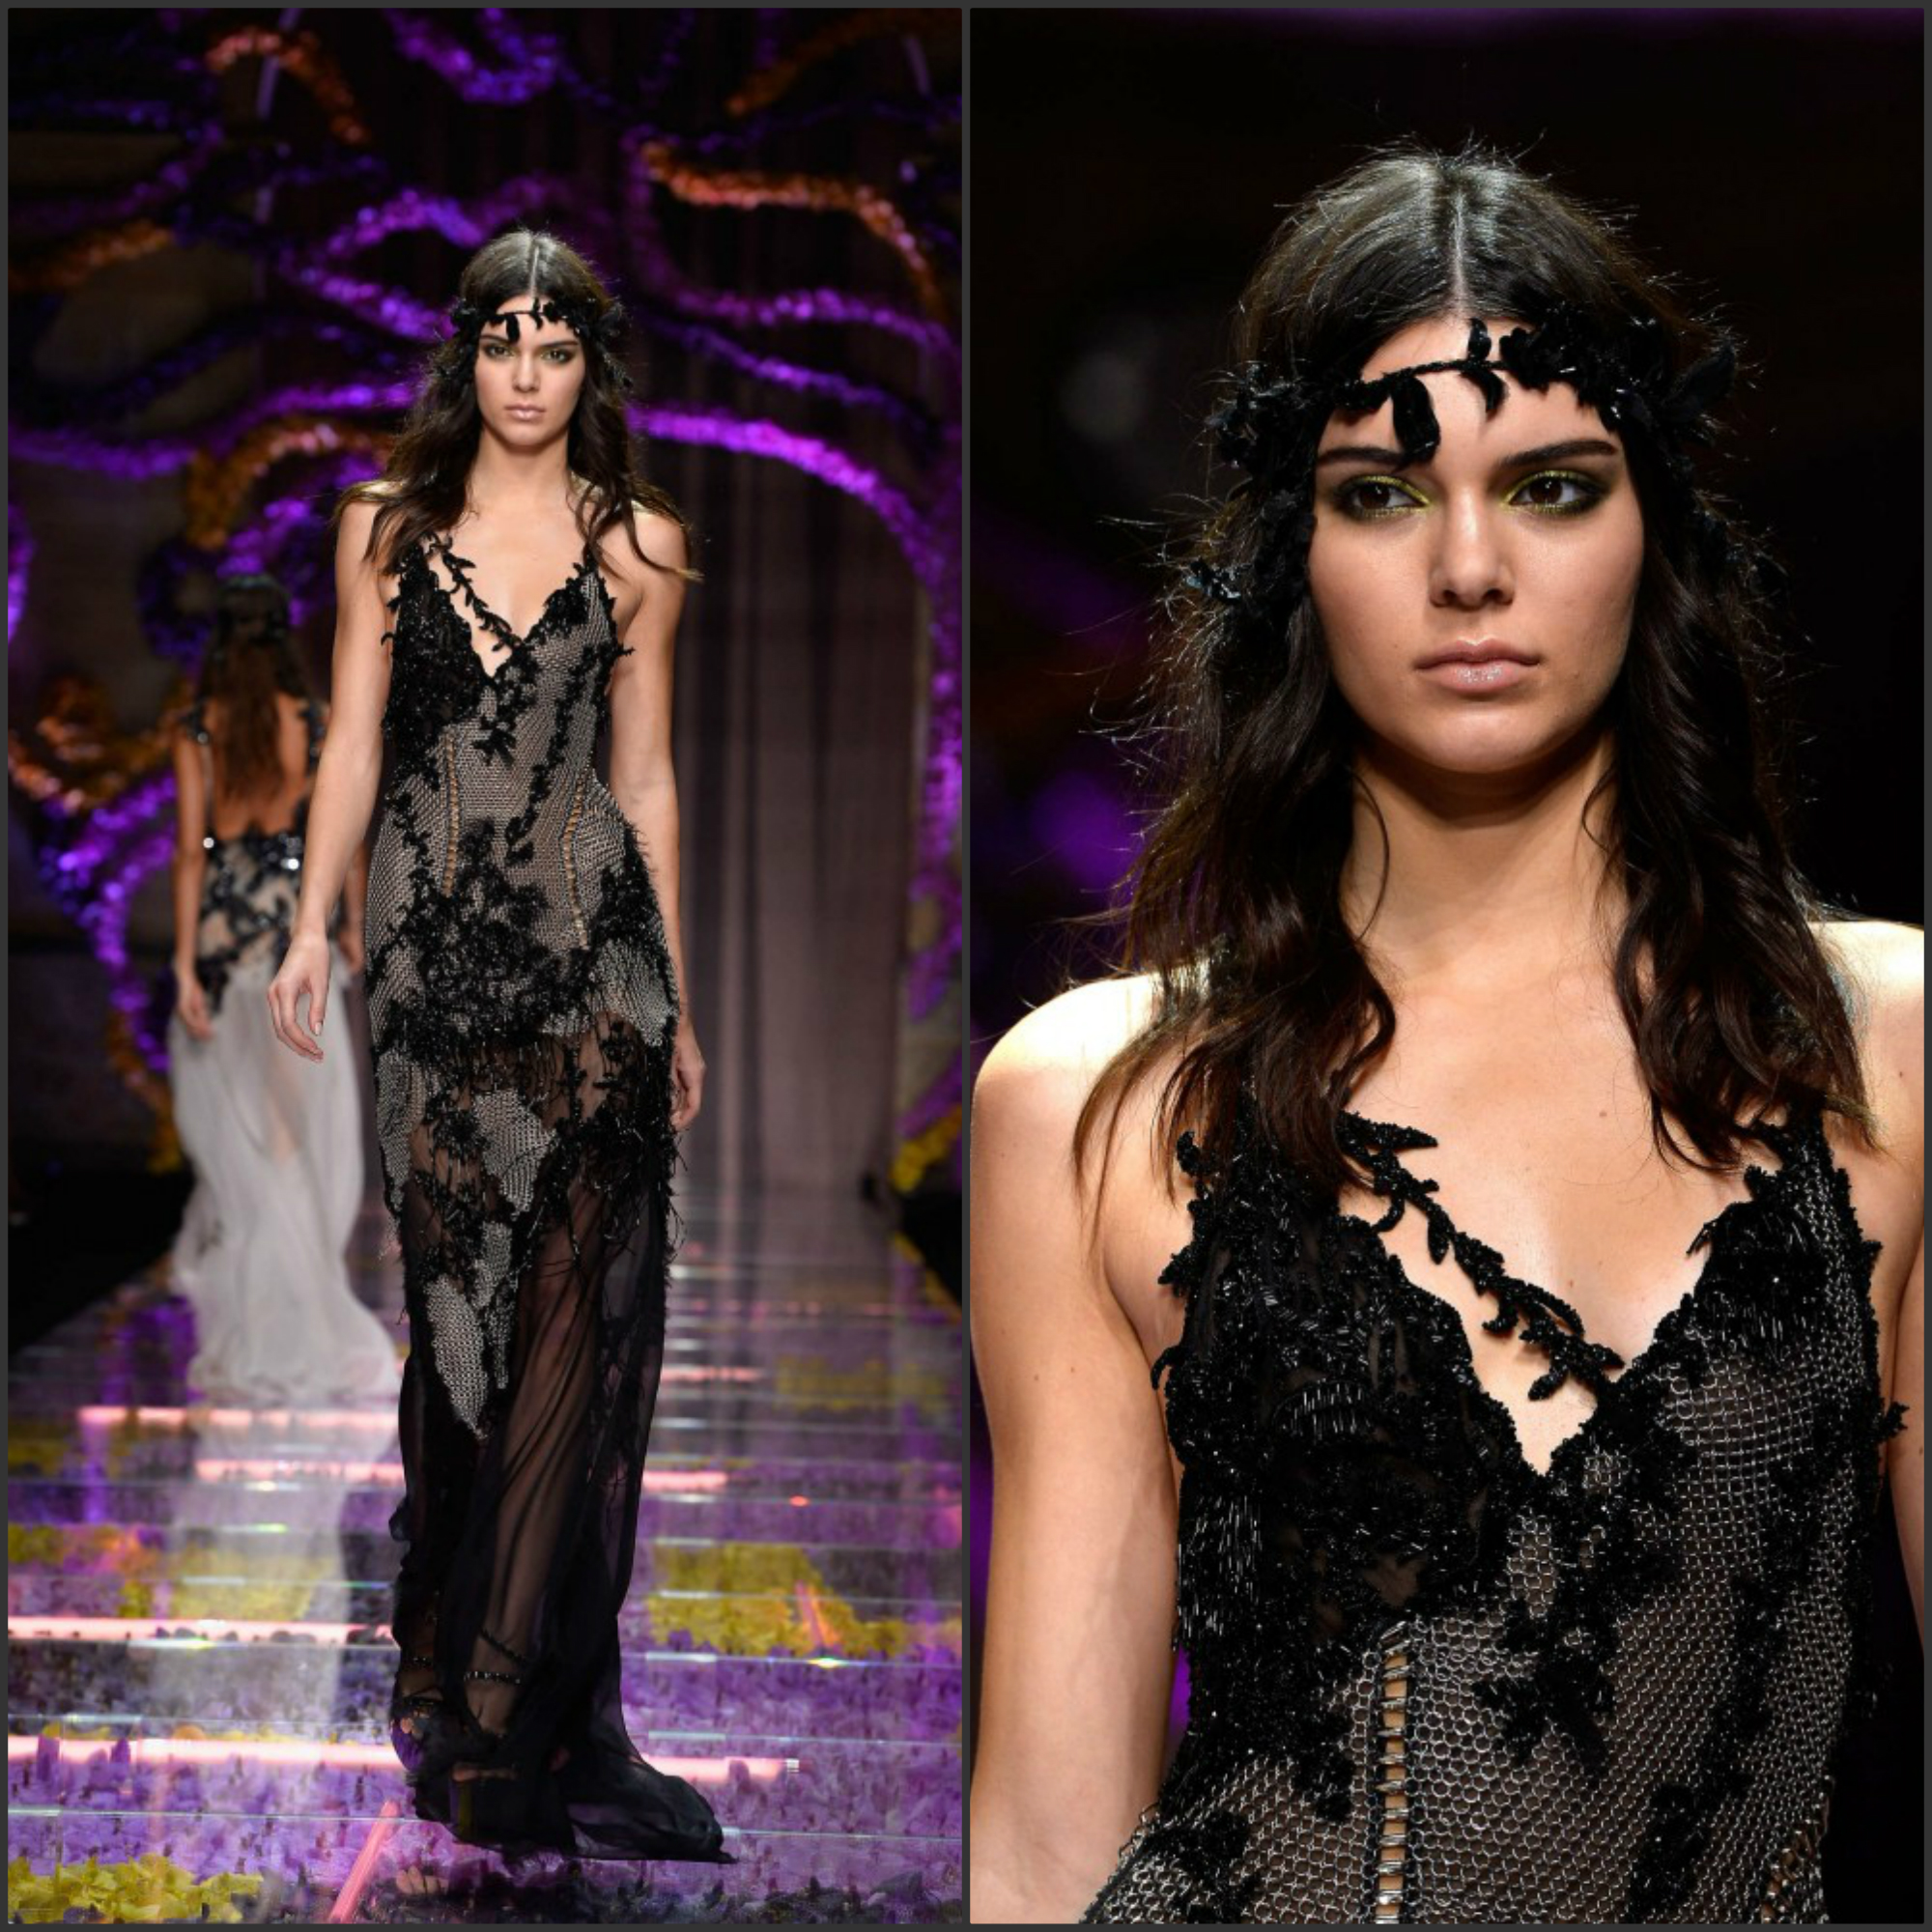 kendall-jenner-atelier-versace-show-in-paris